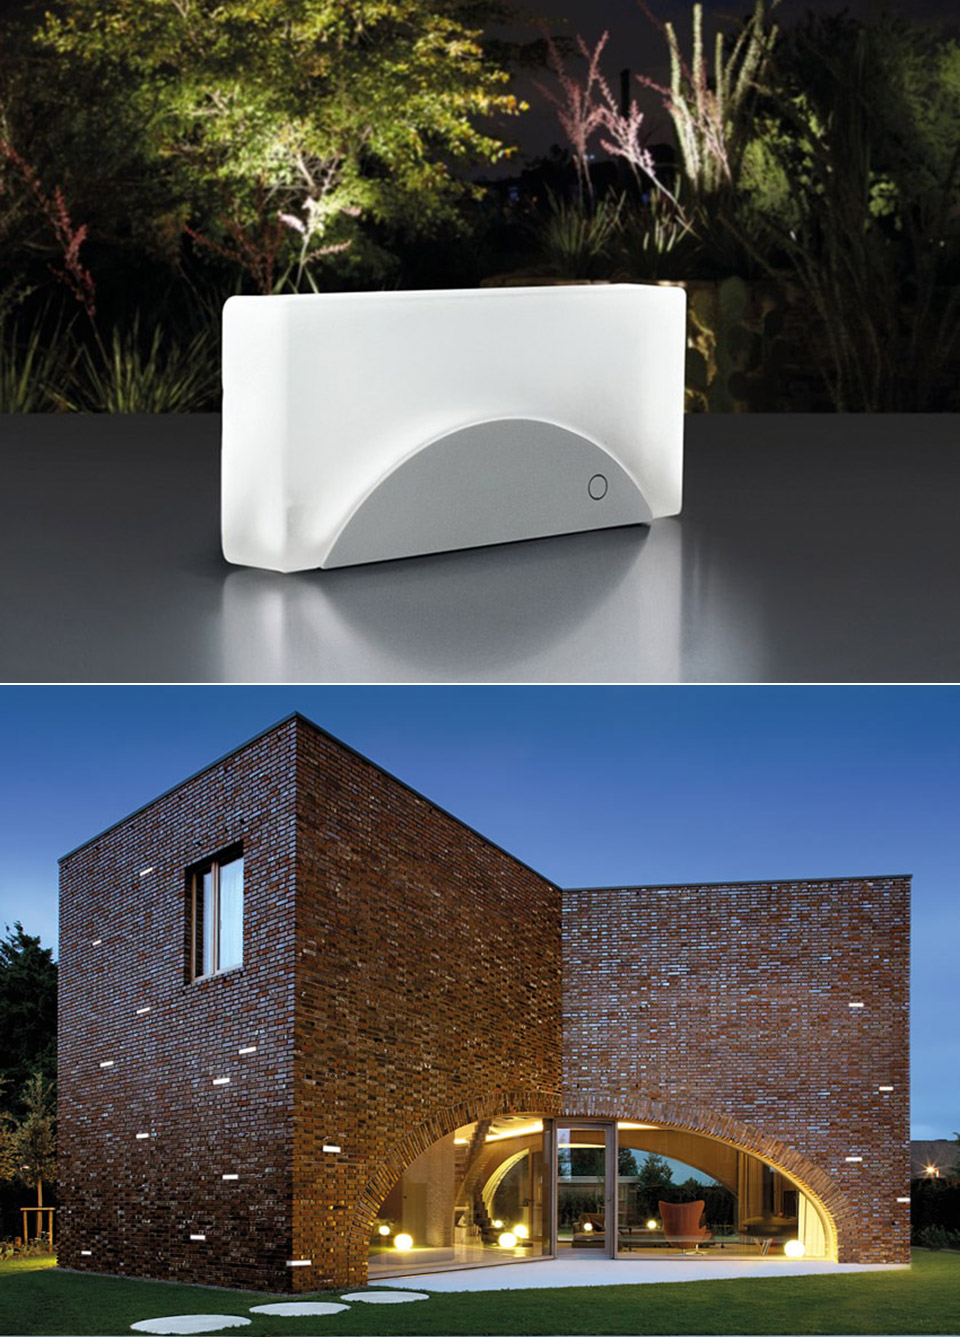 Simes Brick Light